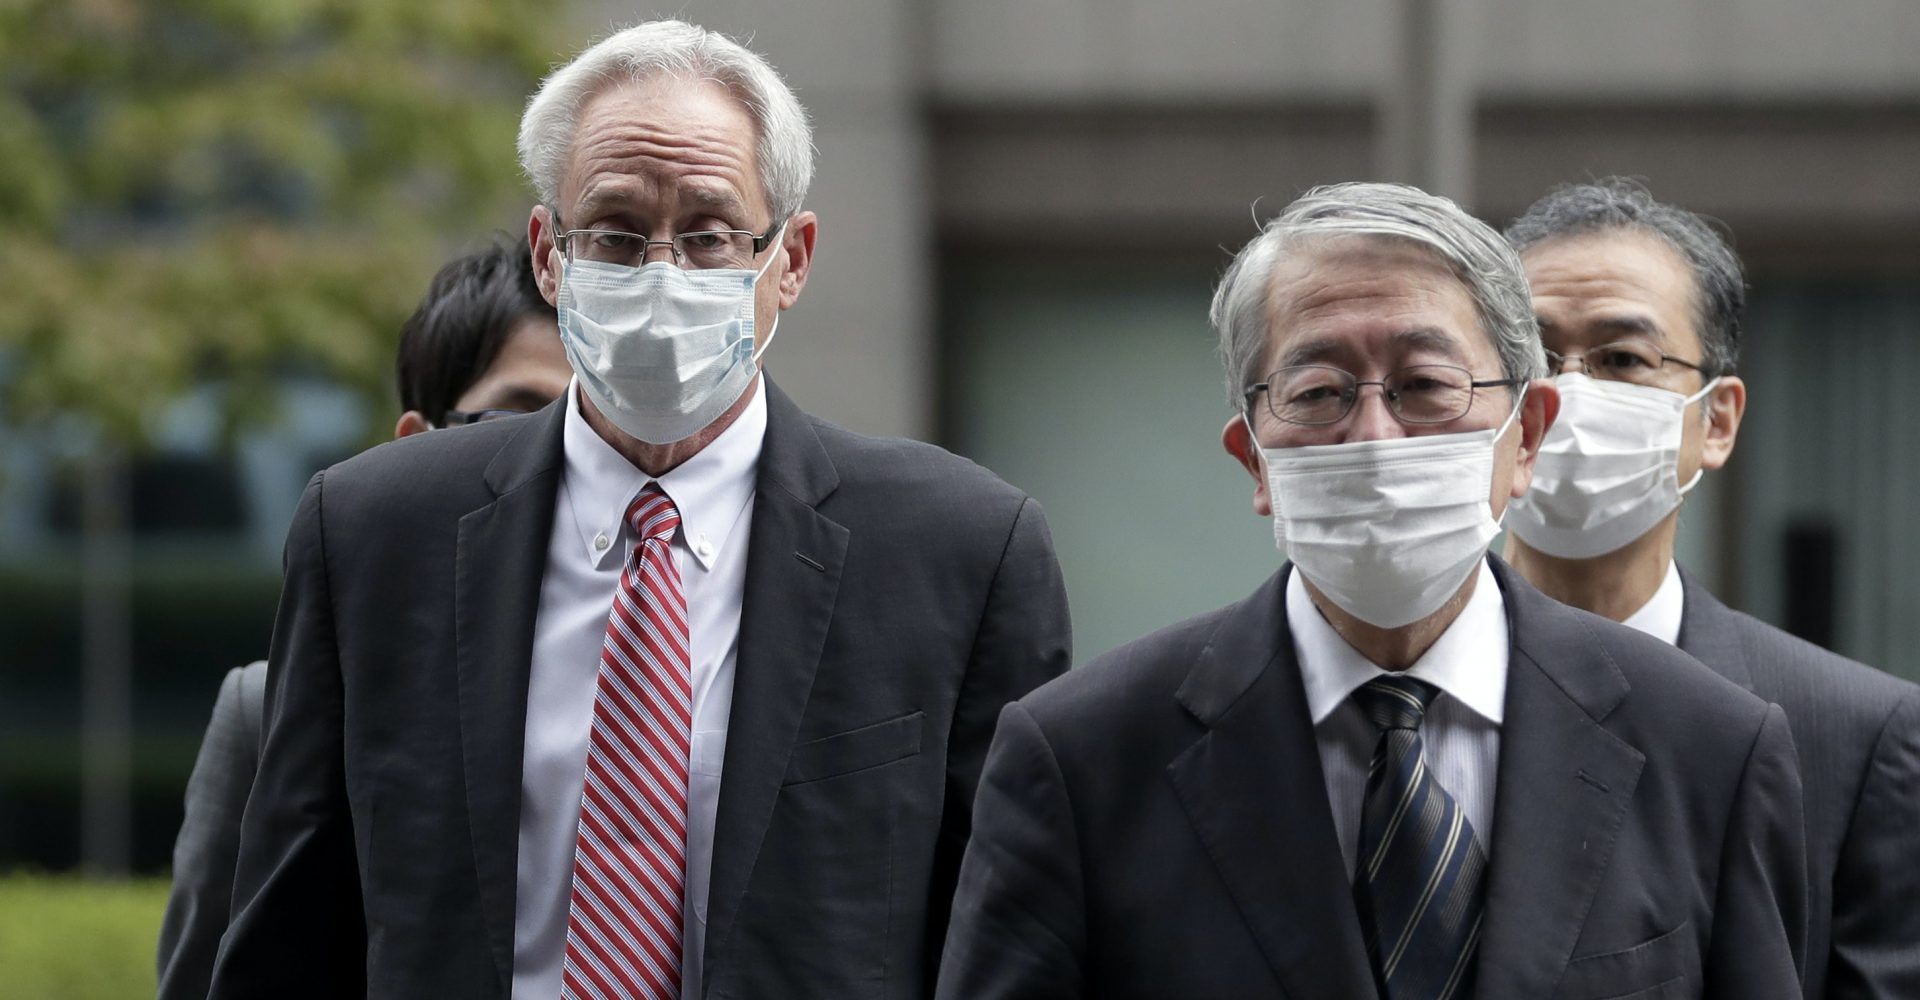 Nissan and former executive go on trial over Carlos Ghosn case